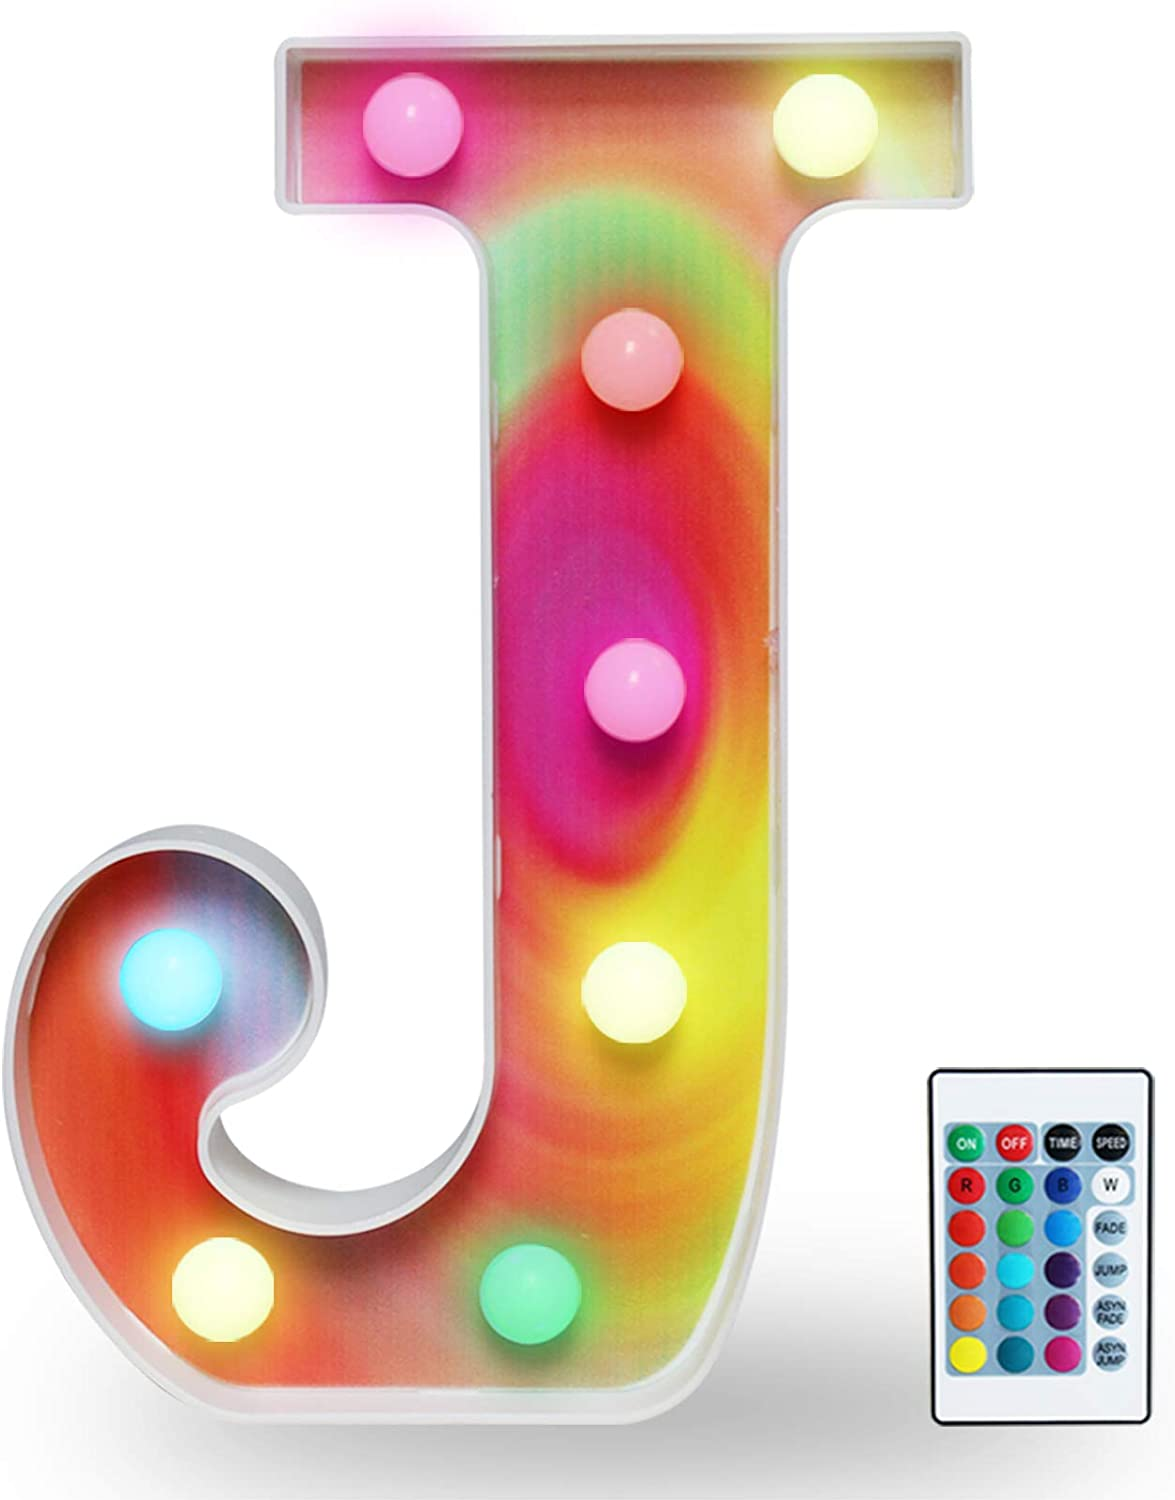 Rainbow Multiple Light up Letters with Remote, 16 Colors Alphabet Letter Lights LED Bar Signs for Wall, Table, Bedroom, Home Decor-Rainbow Letter J